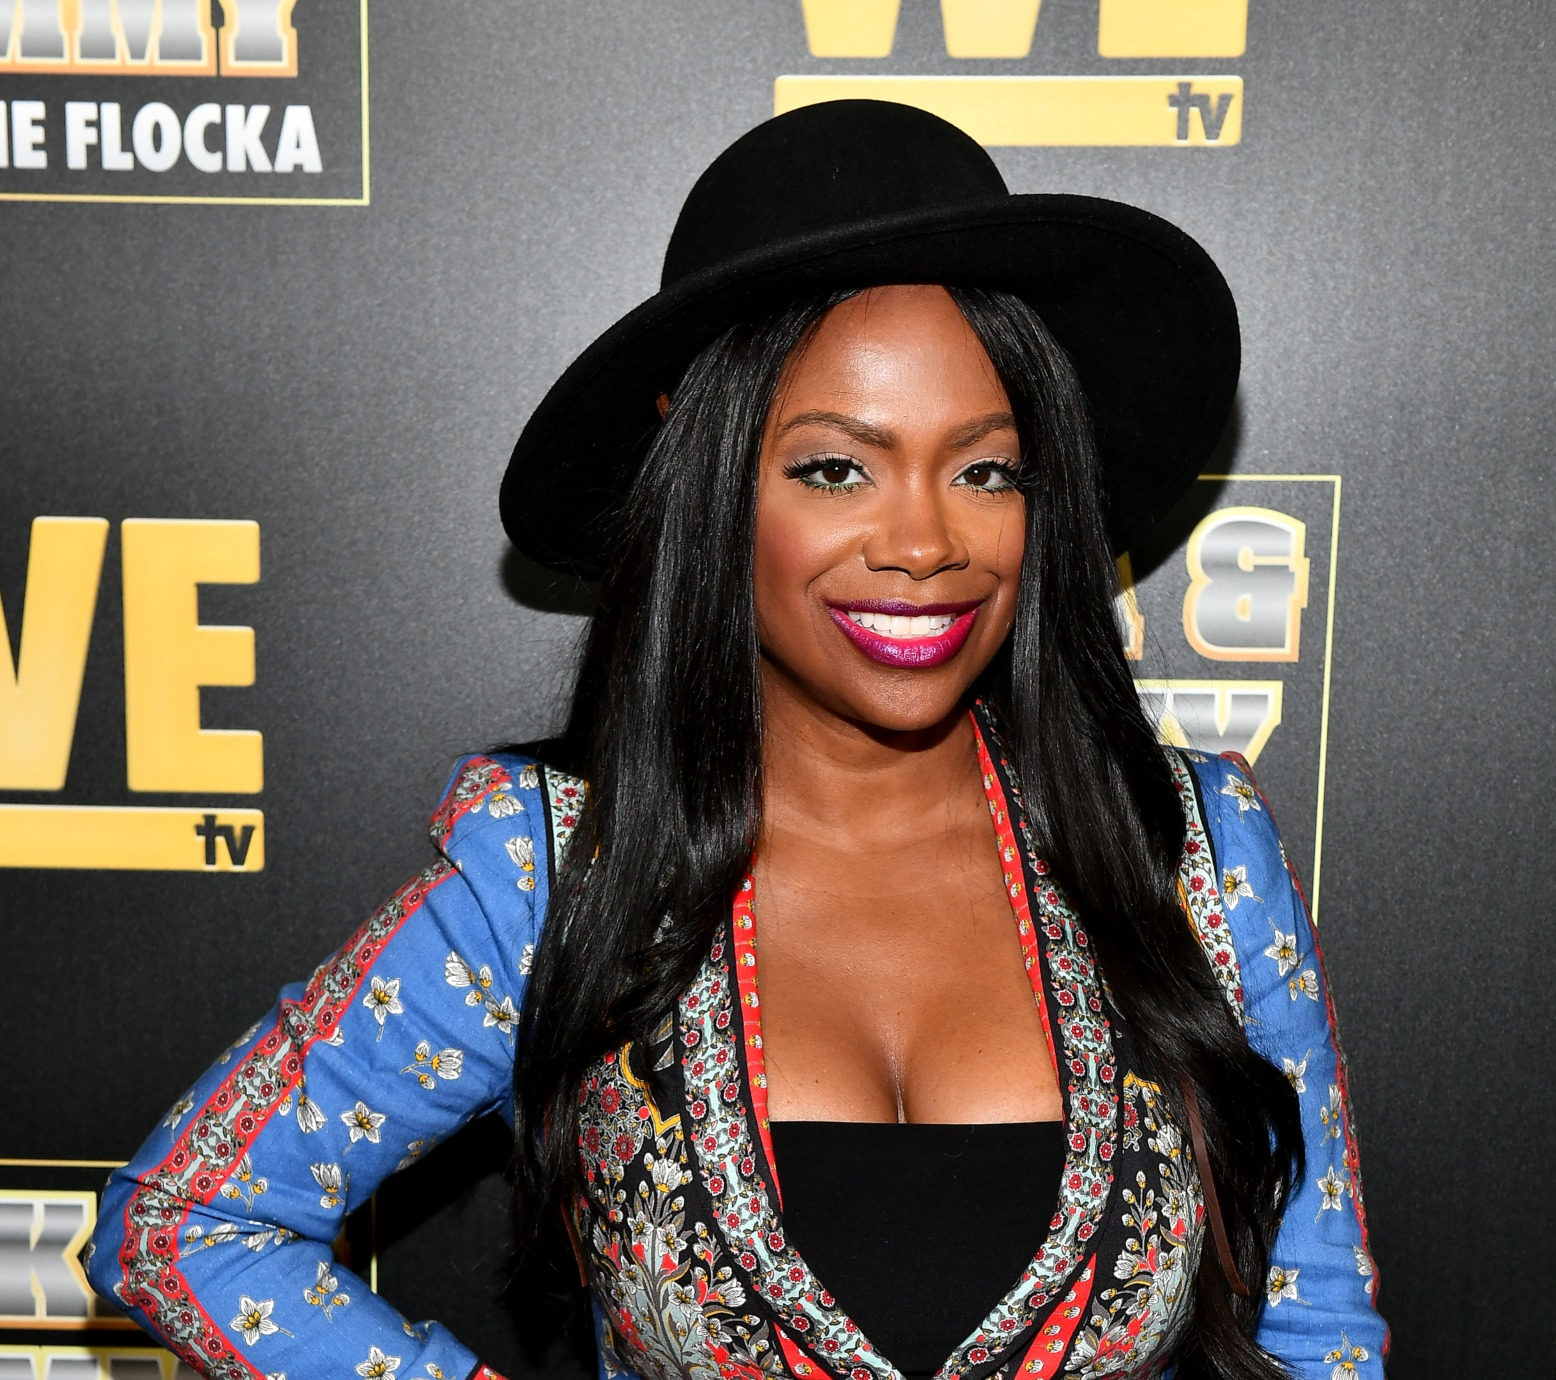 kandi-burruss-celebrates-the-anniversary-of-a-friend-see-the-gorgeous-photos-with-which-she-marked-the-event